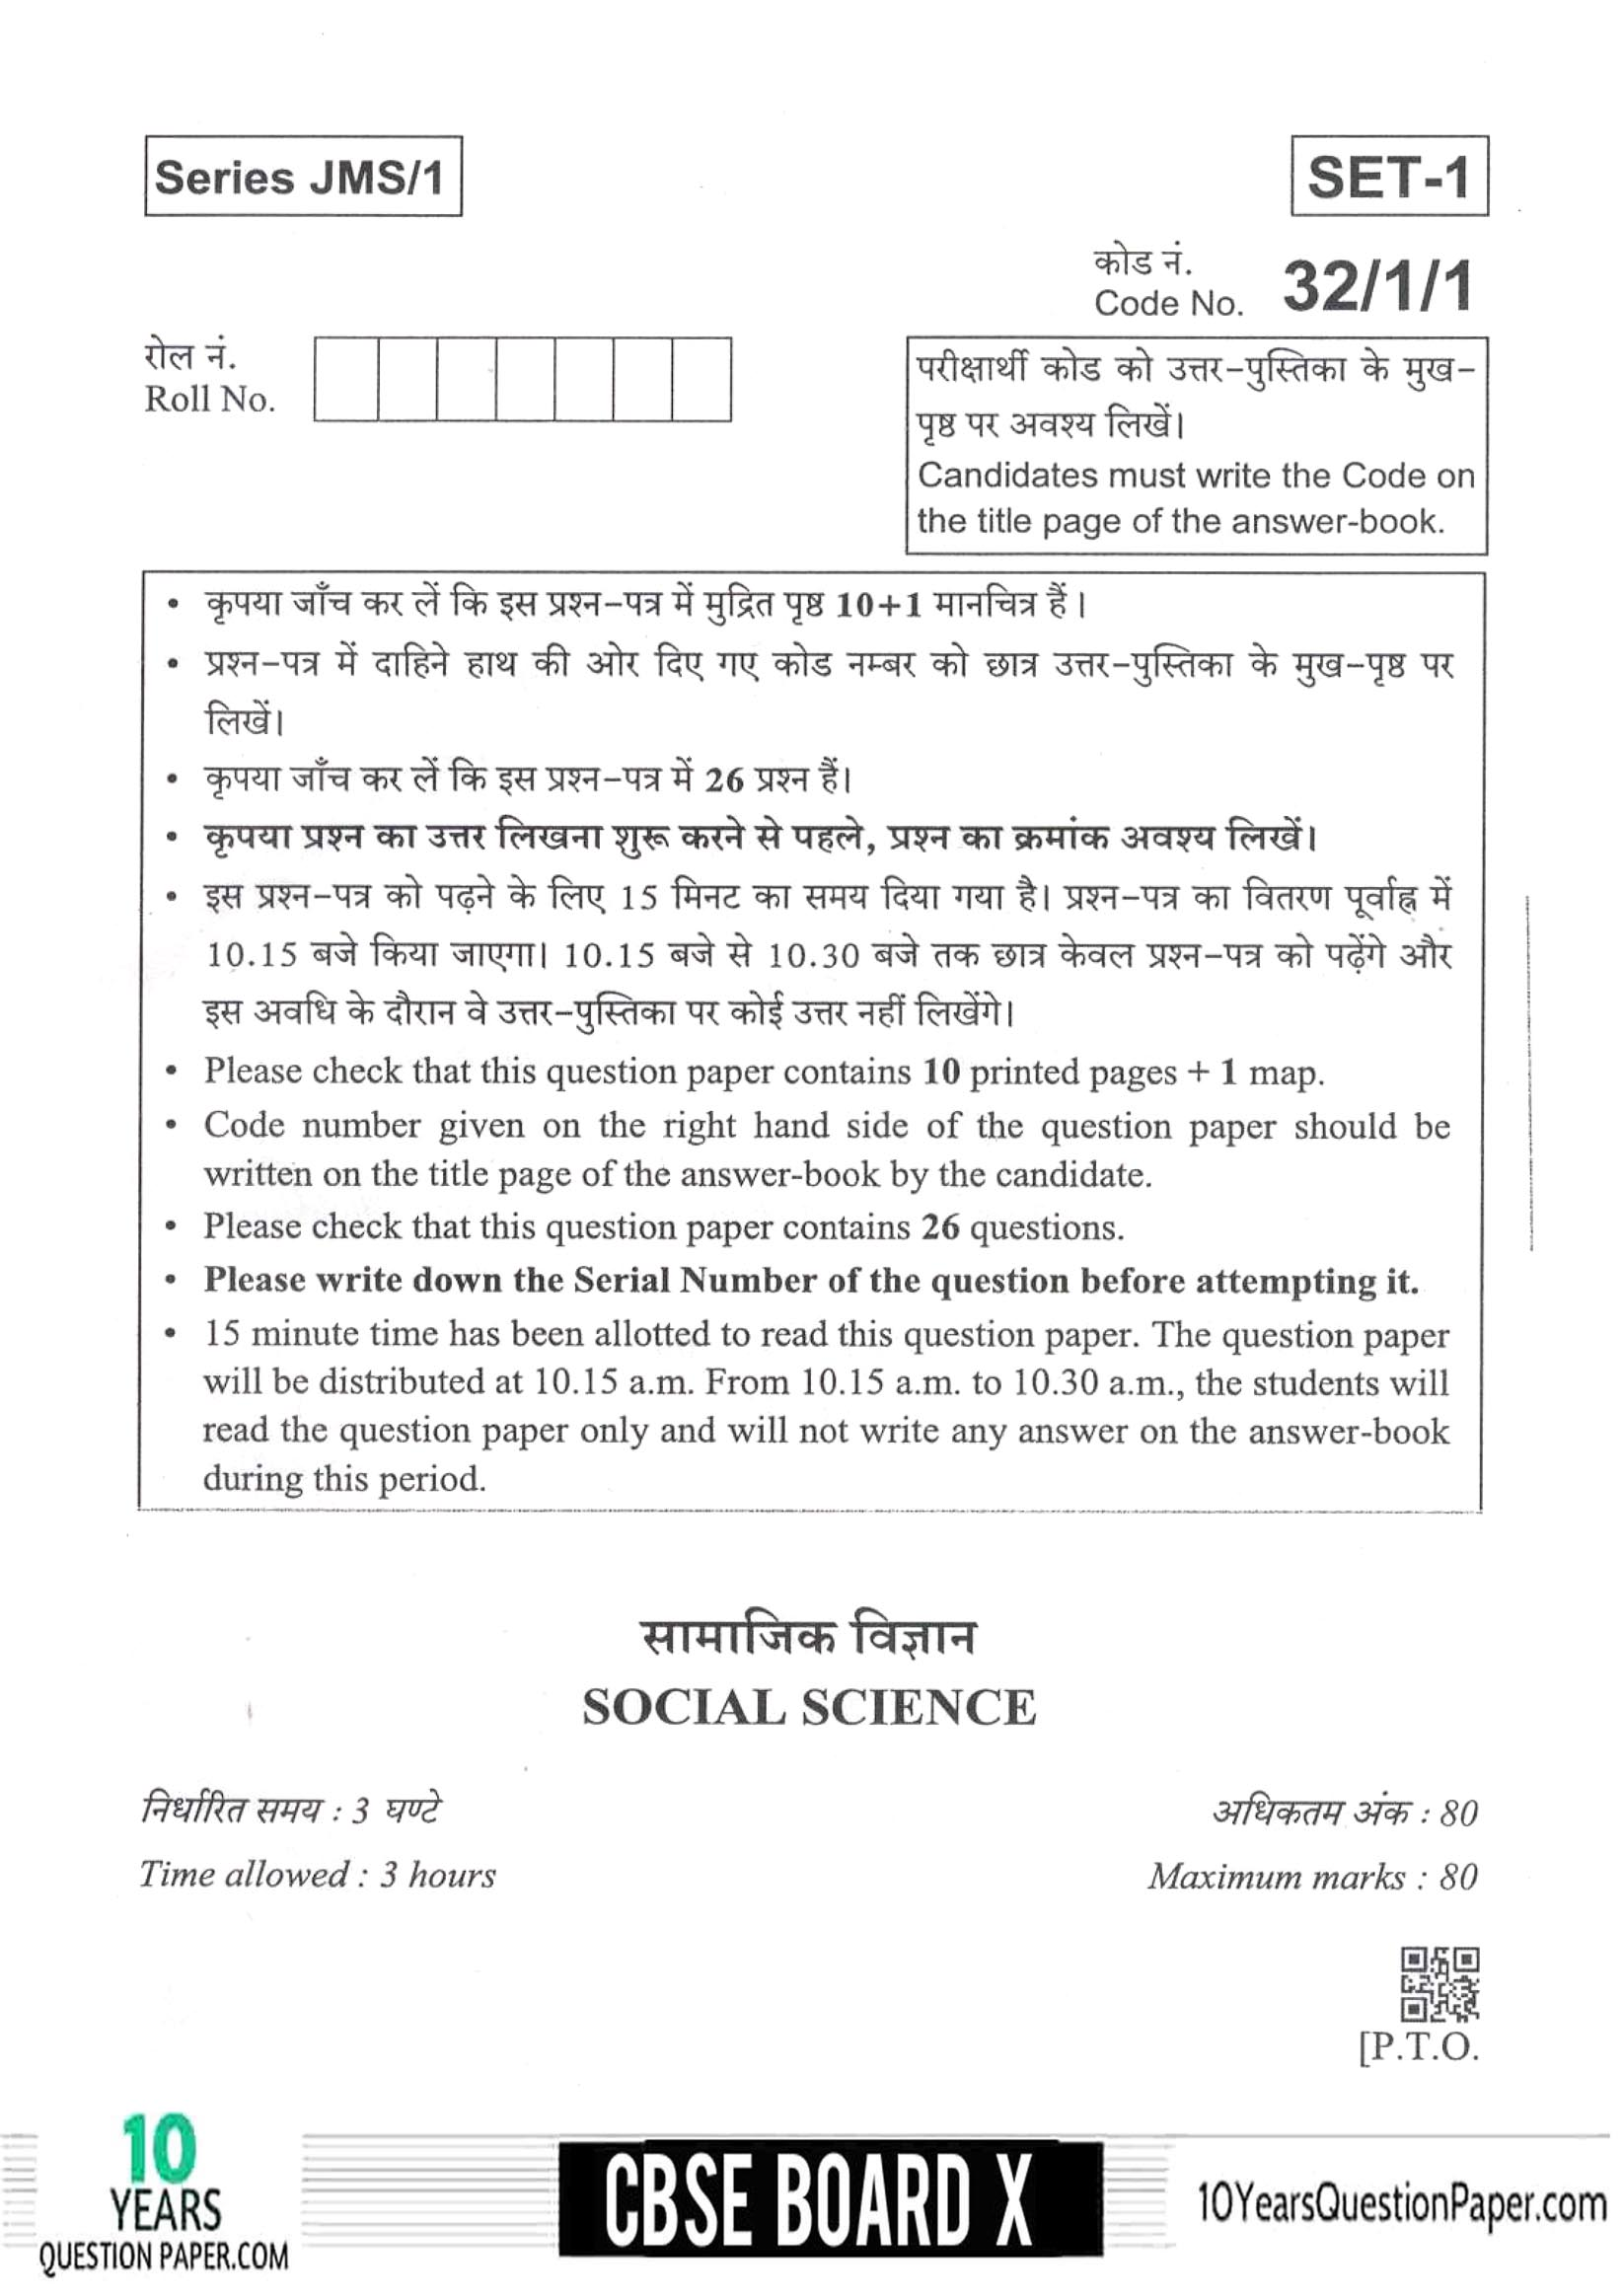 CBSE Class 10 Social Science 2019 Question Paper